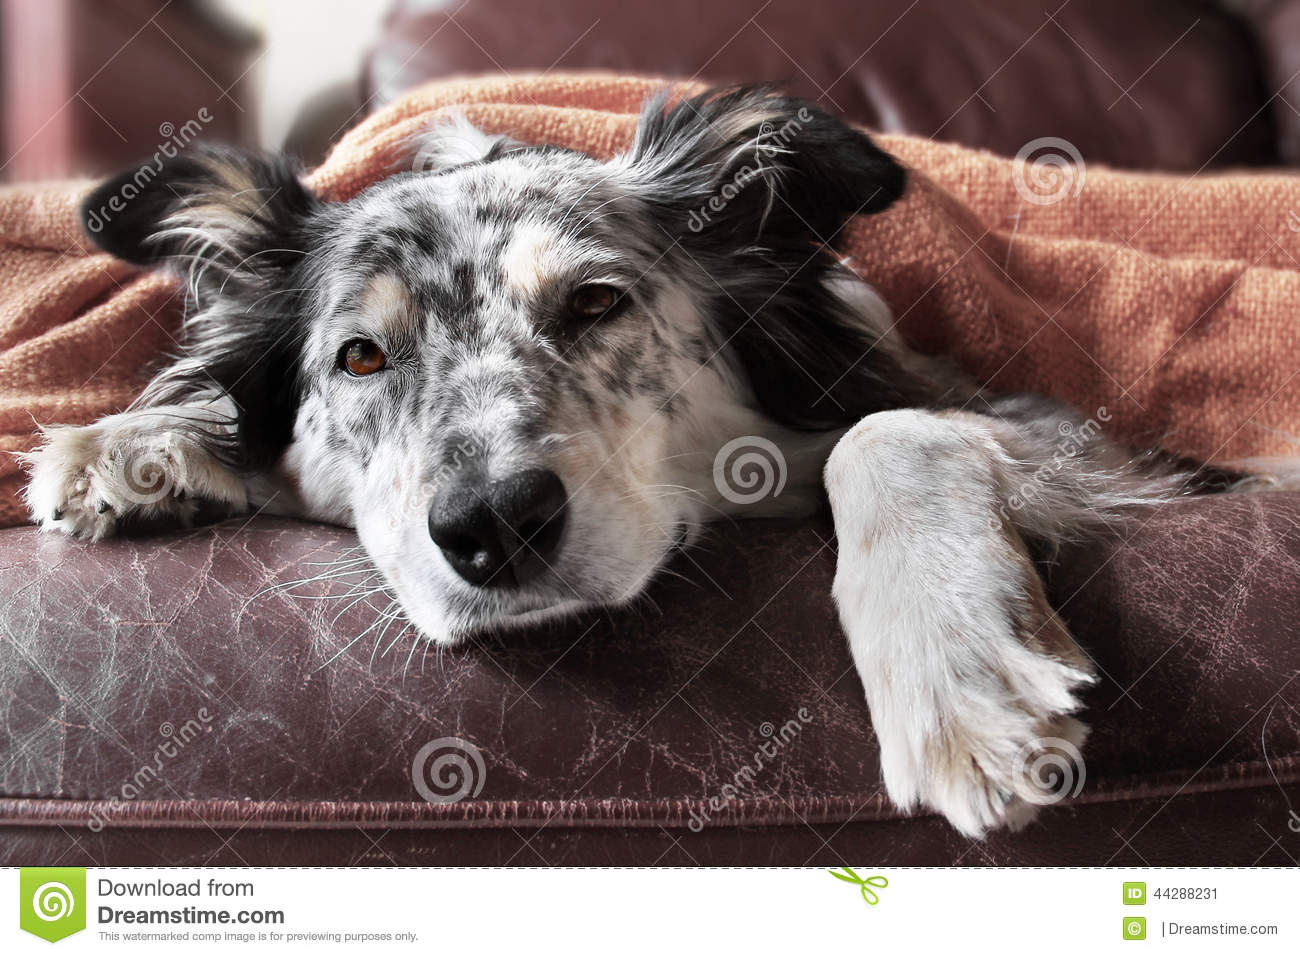 Dog On Couch With Blanket Looking Sad Sick Bored Lonely